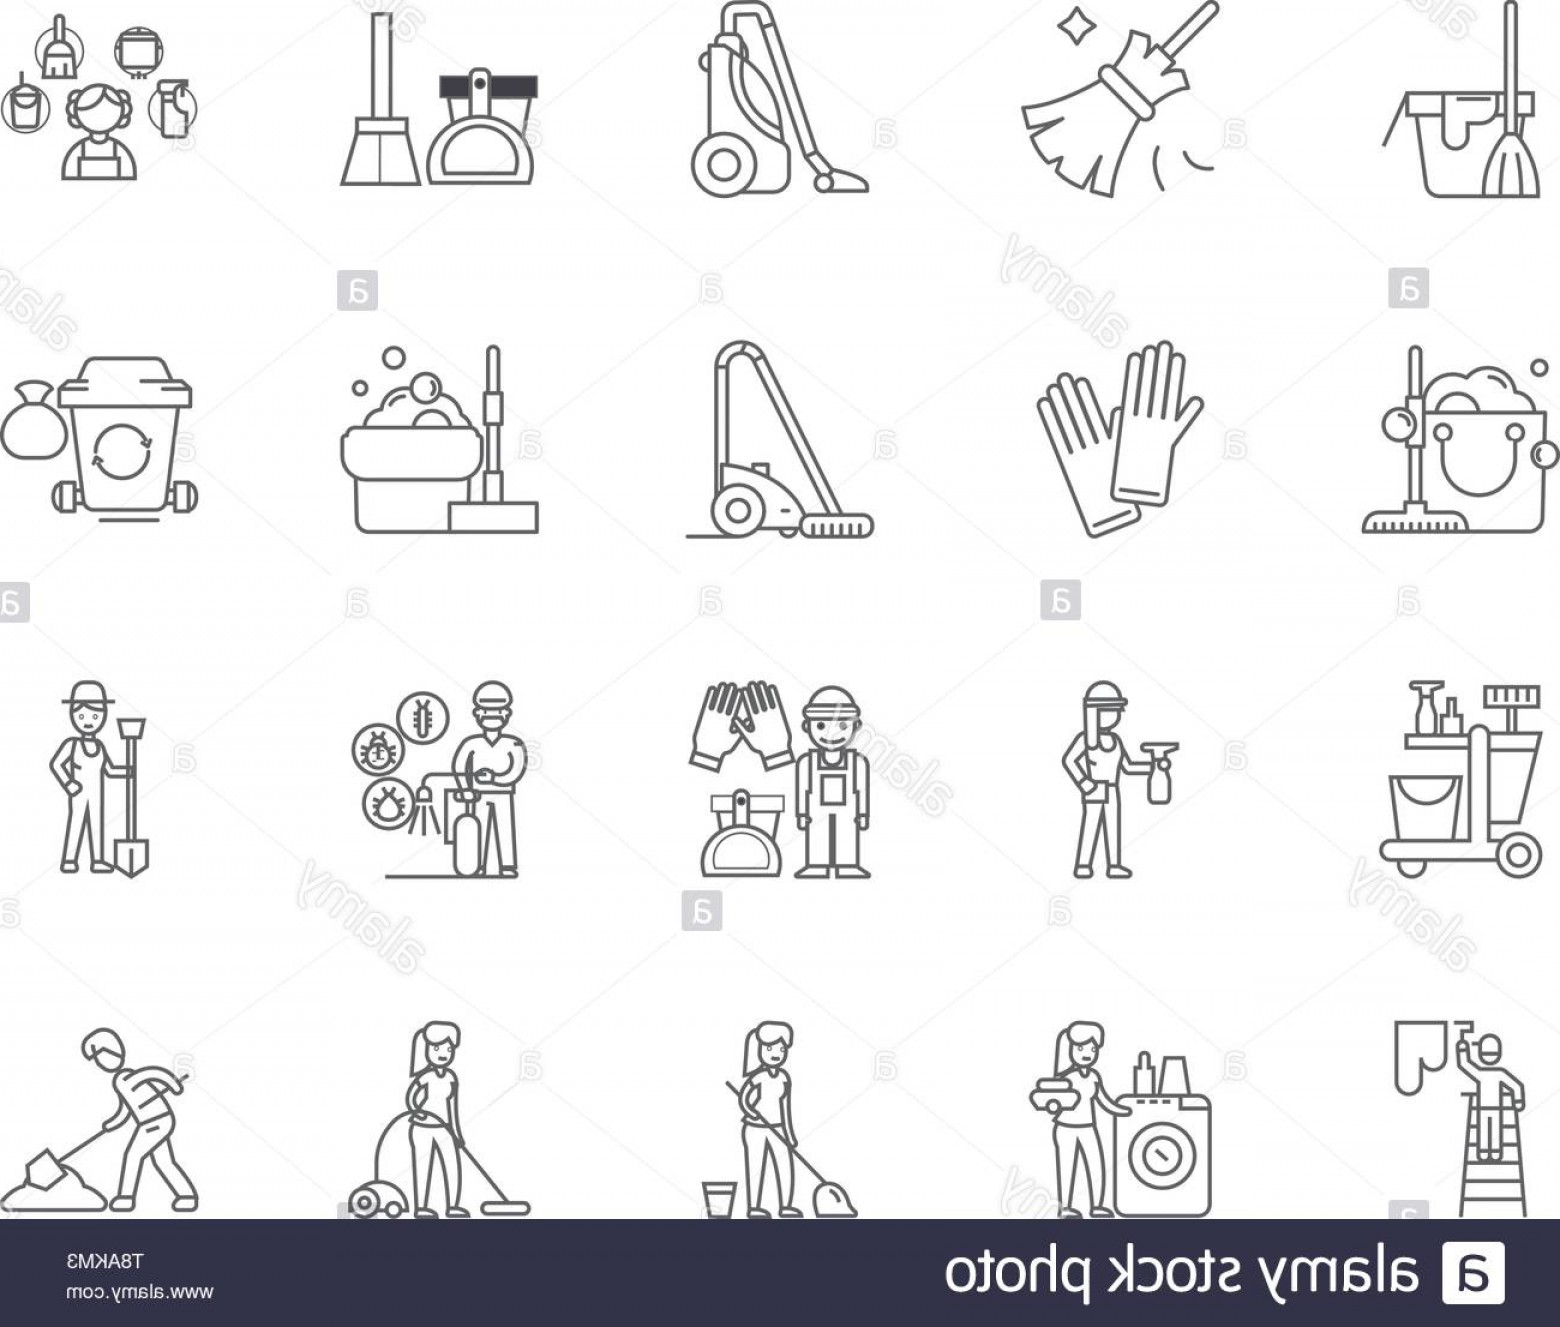 Janitorial Vector: Janitorial Service Line Icons Signs Vector Set Outline Illustration Concept Image